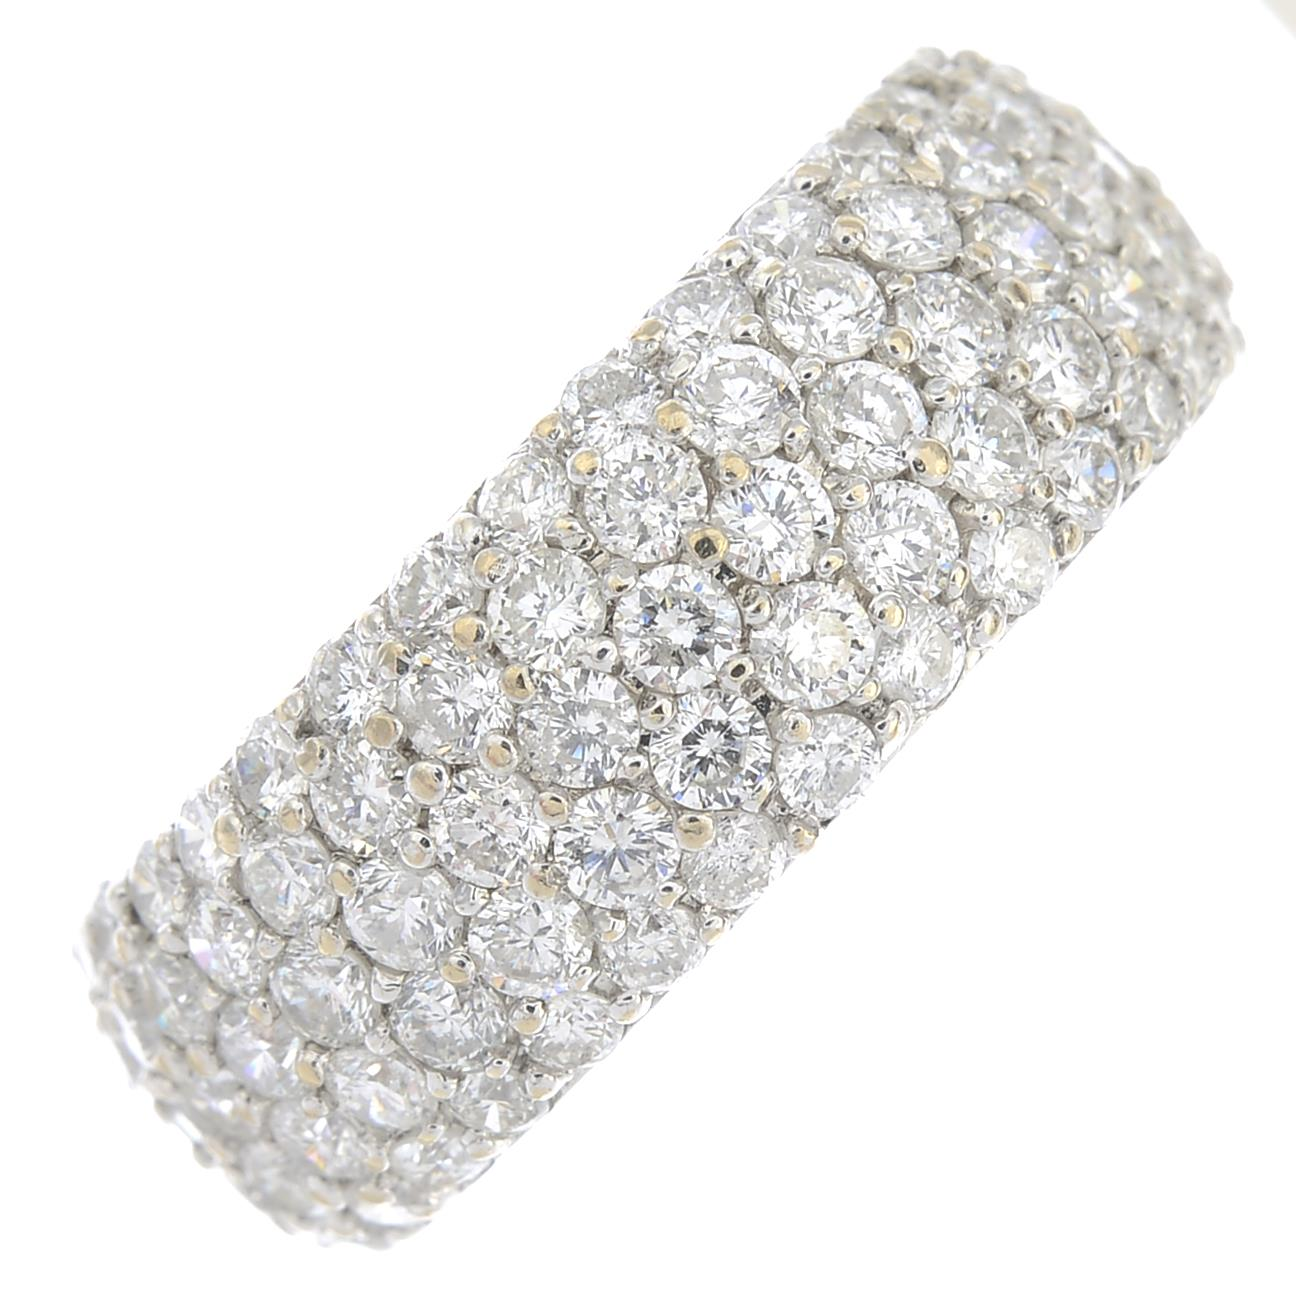 Lot 80 - An 18ct gold pave-set diamond full eternity ring.Estimated total diamond weight 4.25cts,